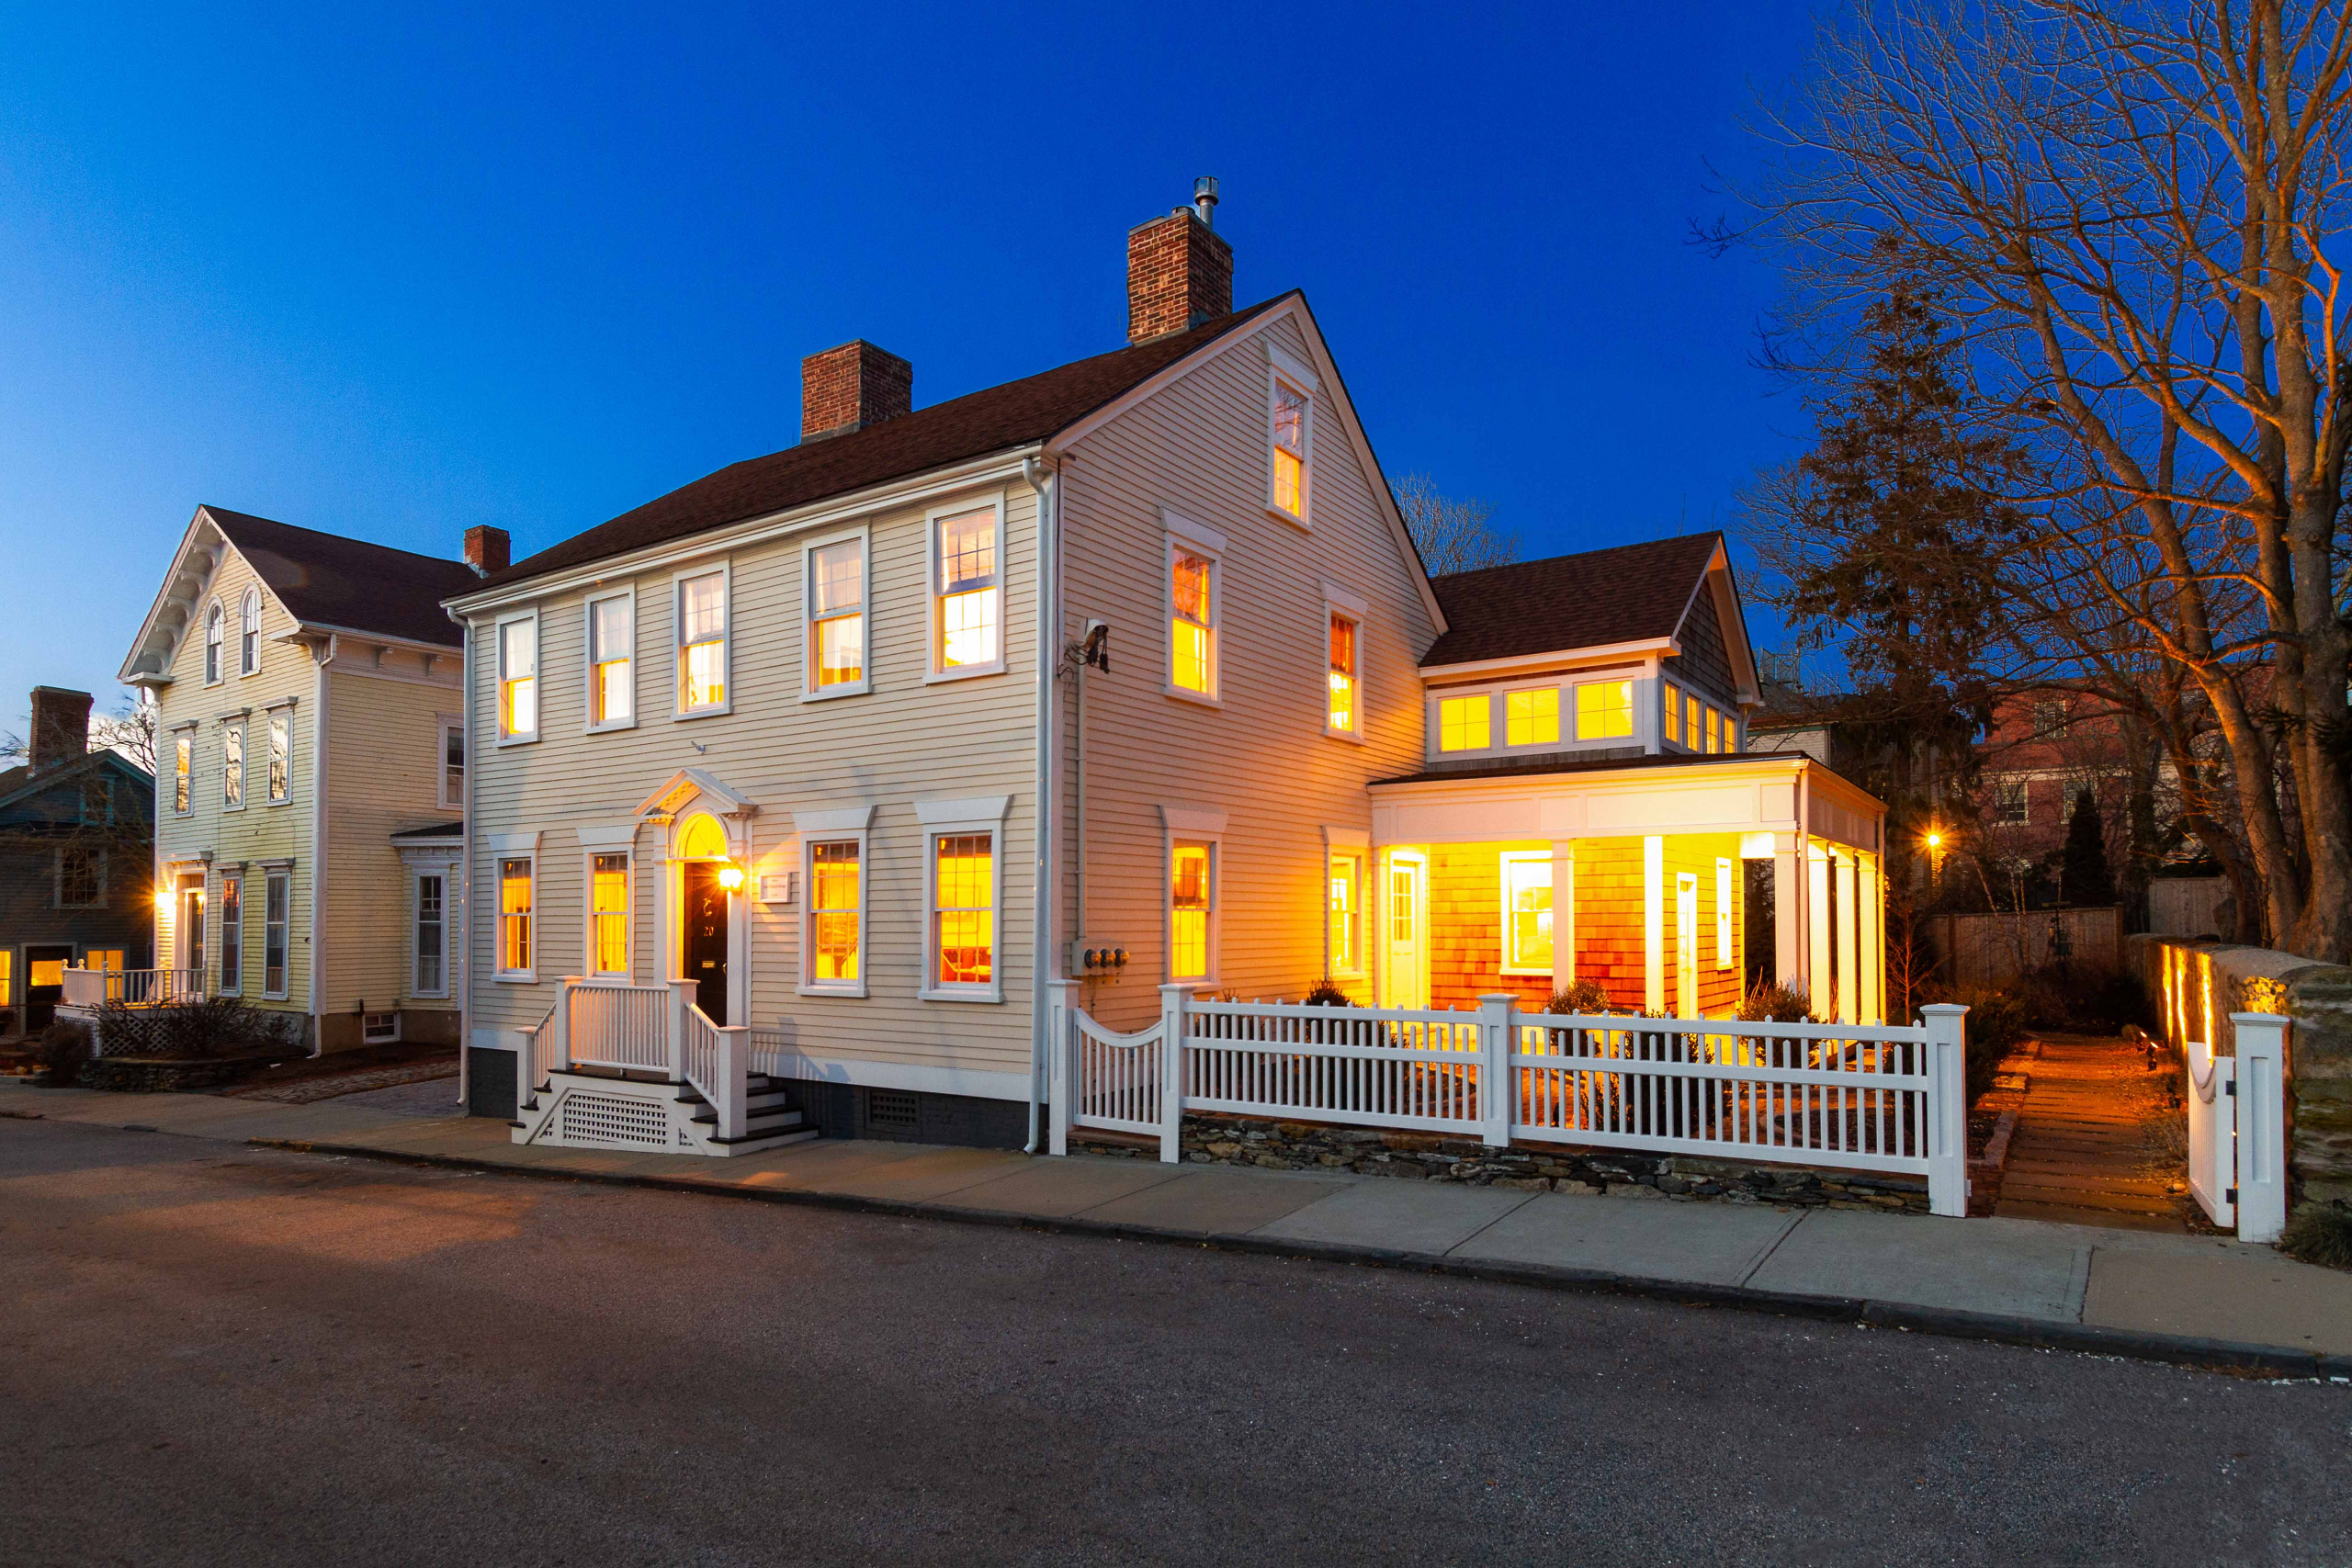 LILA DELMAN'S NEWPORT LIVING GROUP SELLS HISTORIC HILL HOME FOR $1,625,000